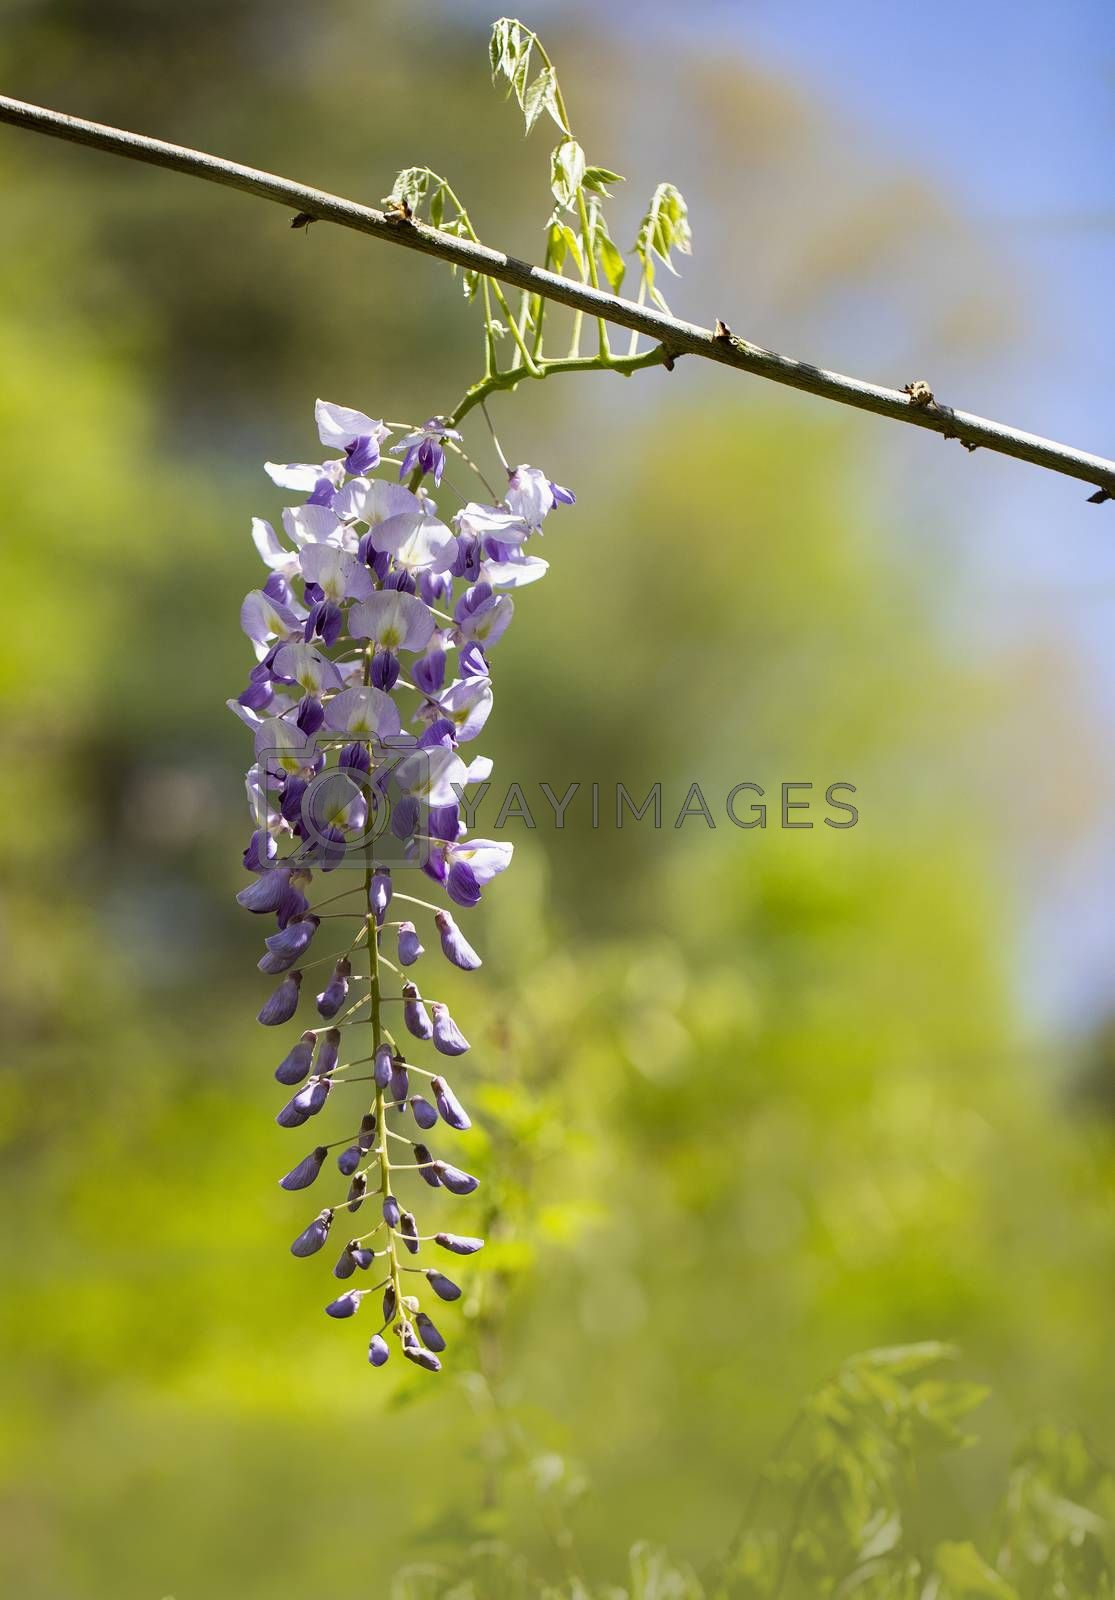 Purple Wisteria Raceme in Sunshine by Charlie Floyd